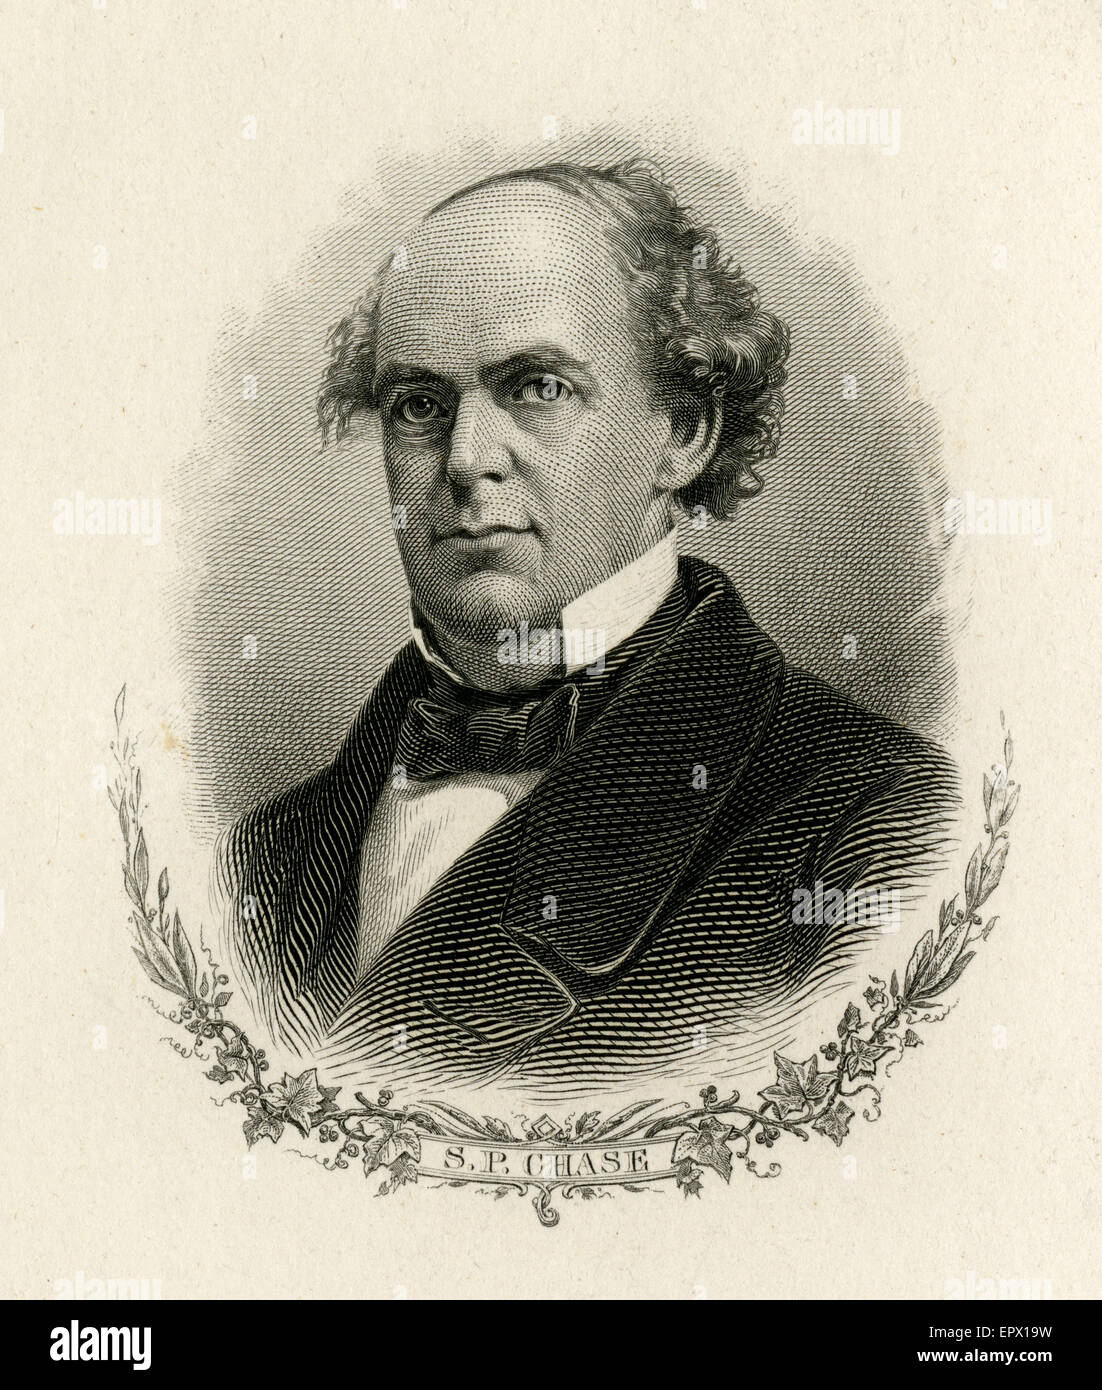 Antique c1870 steel engraving of Salmon P. Chase. Salmon Portland Chase (1808-1873) was an American politician and Stock Photo